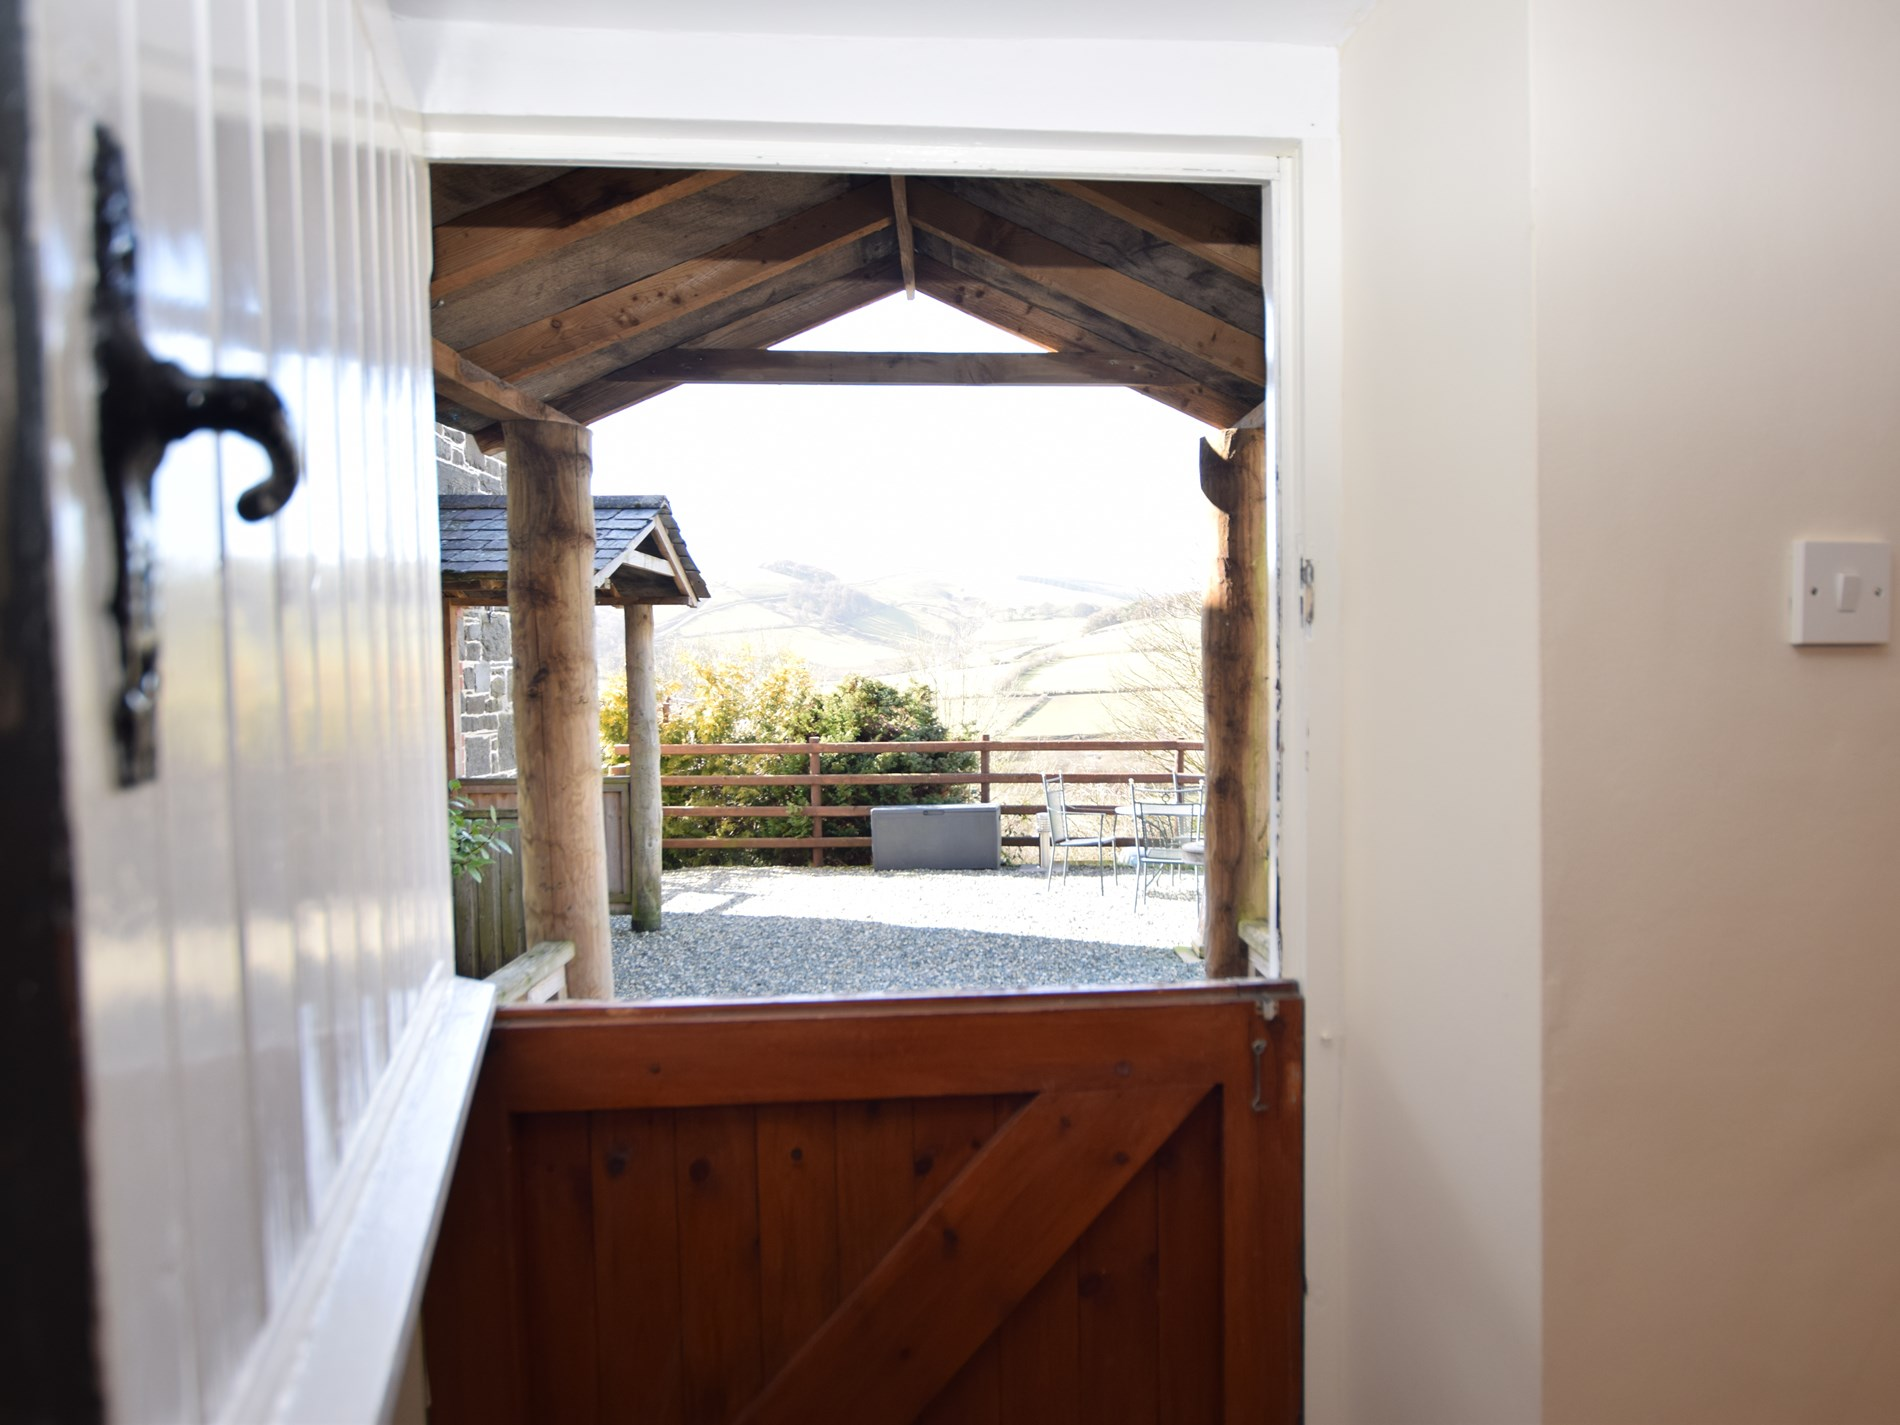 Enjoy the views from the stable door across the courtyard